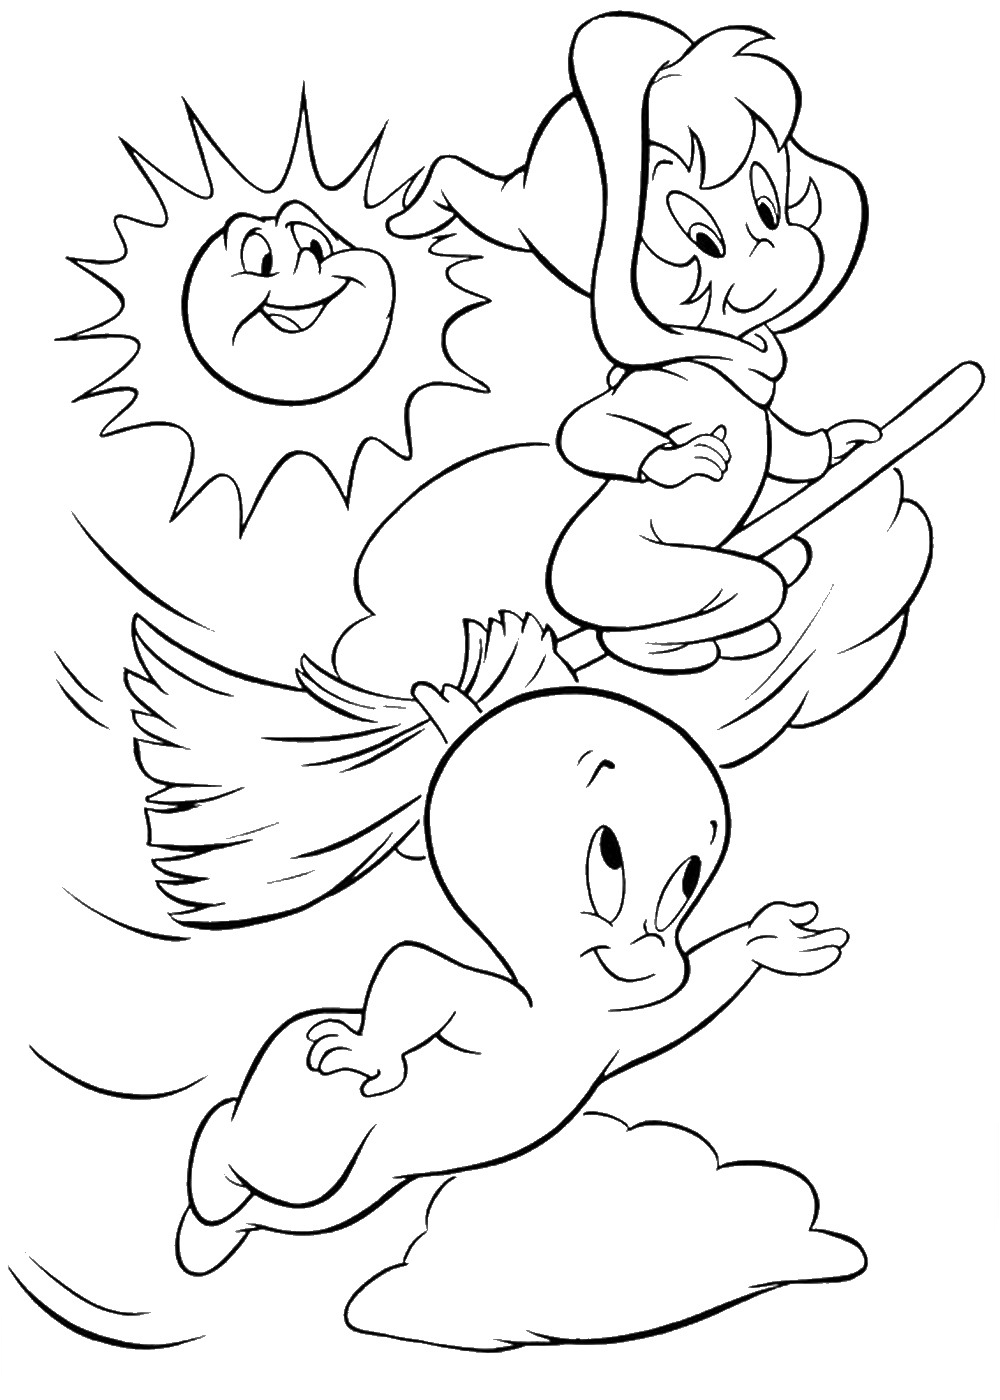 Download Casper Coloring Pages - Best Coloring Pages For Kids